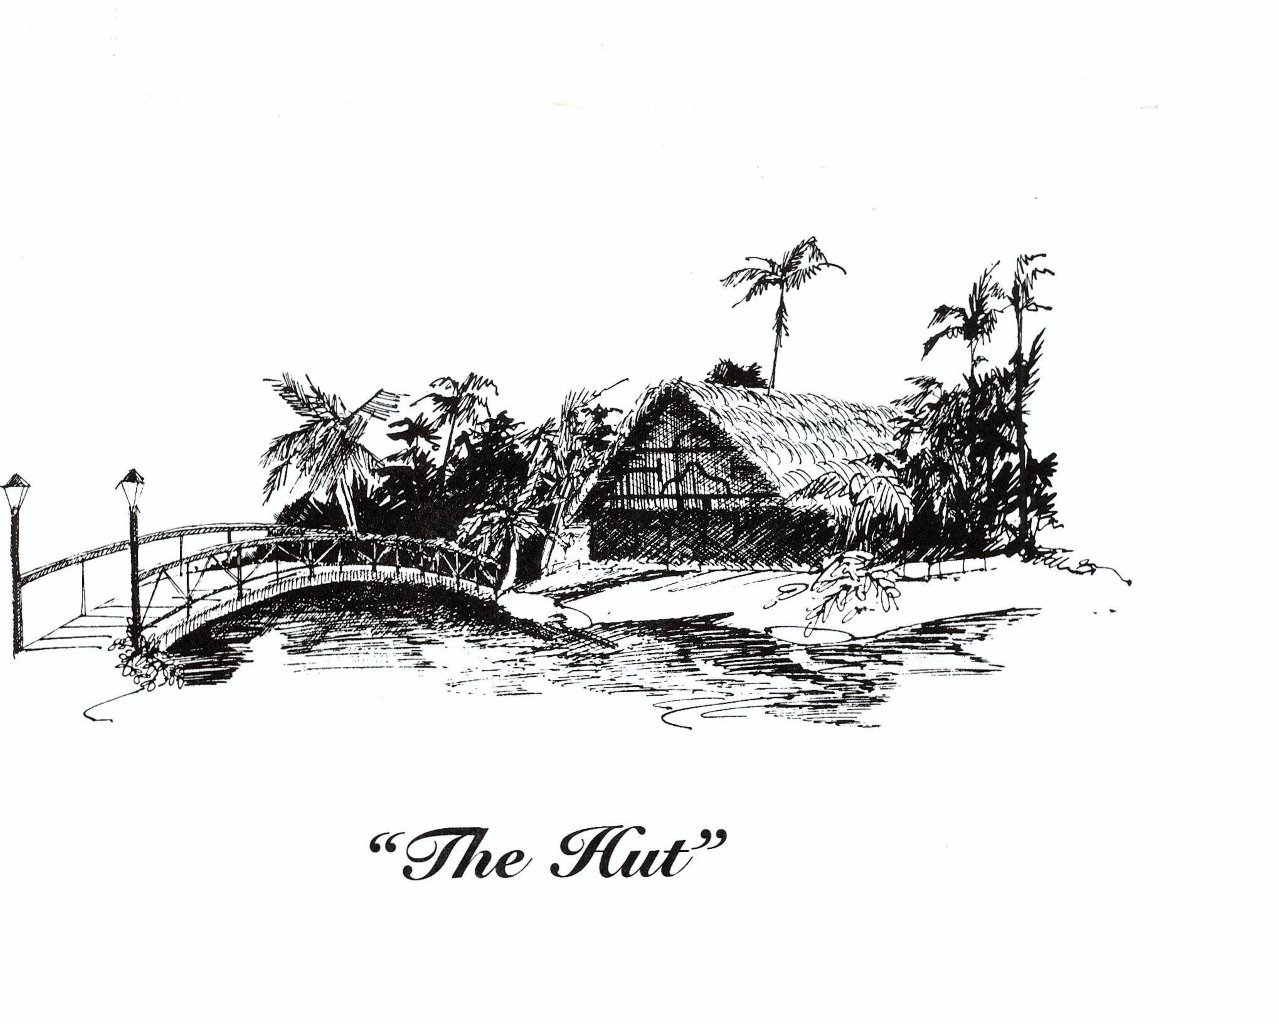 """Emile Gruppe's """"The Hut,"""" and the Heart of Frances"""